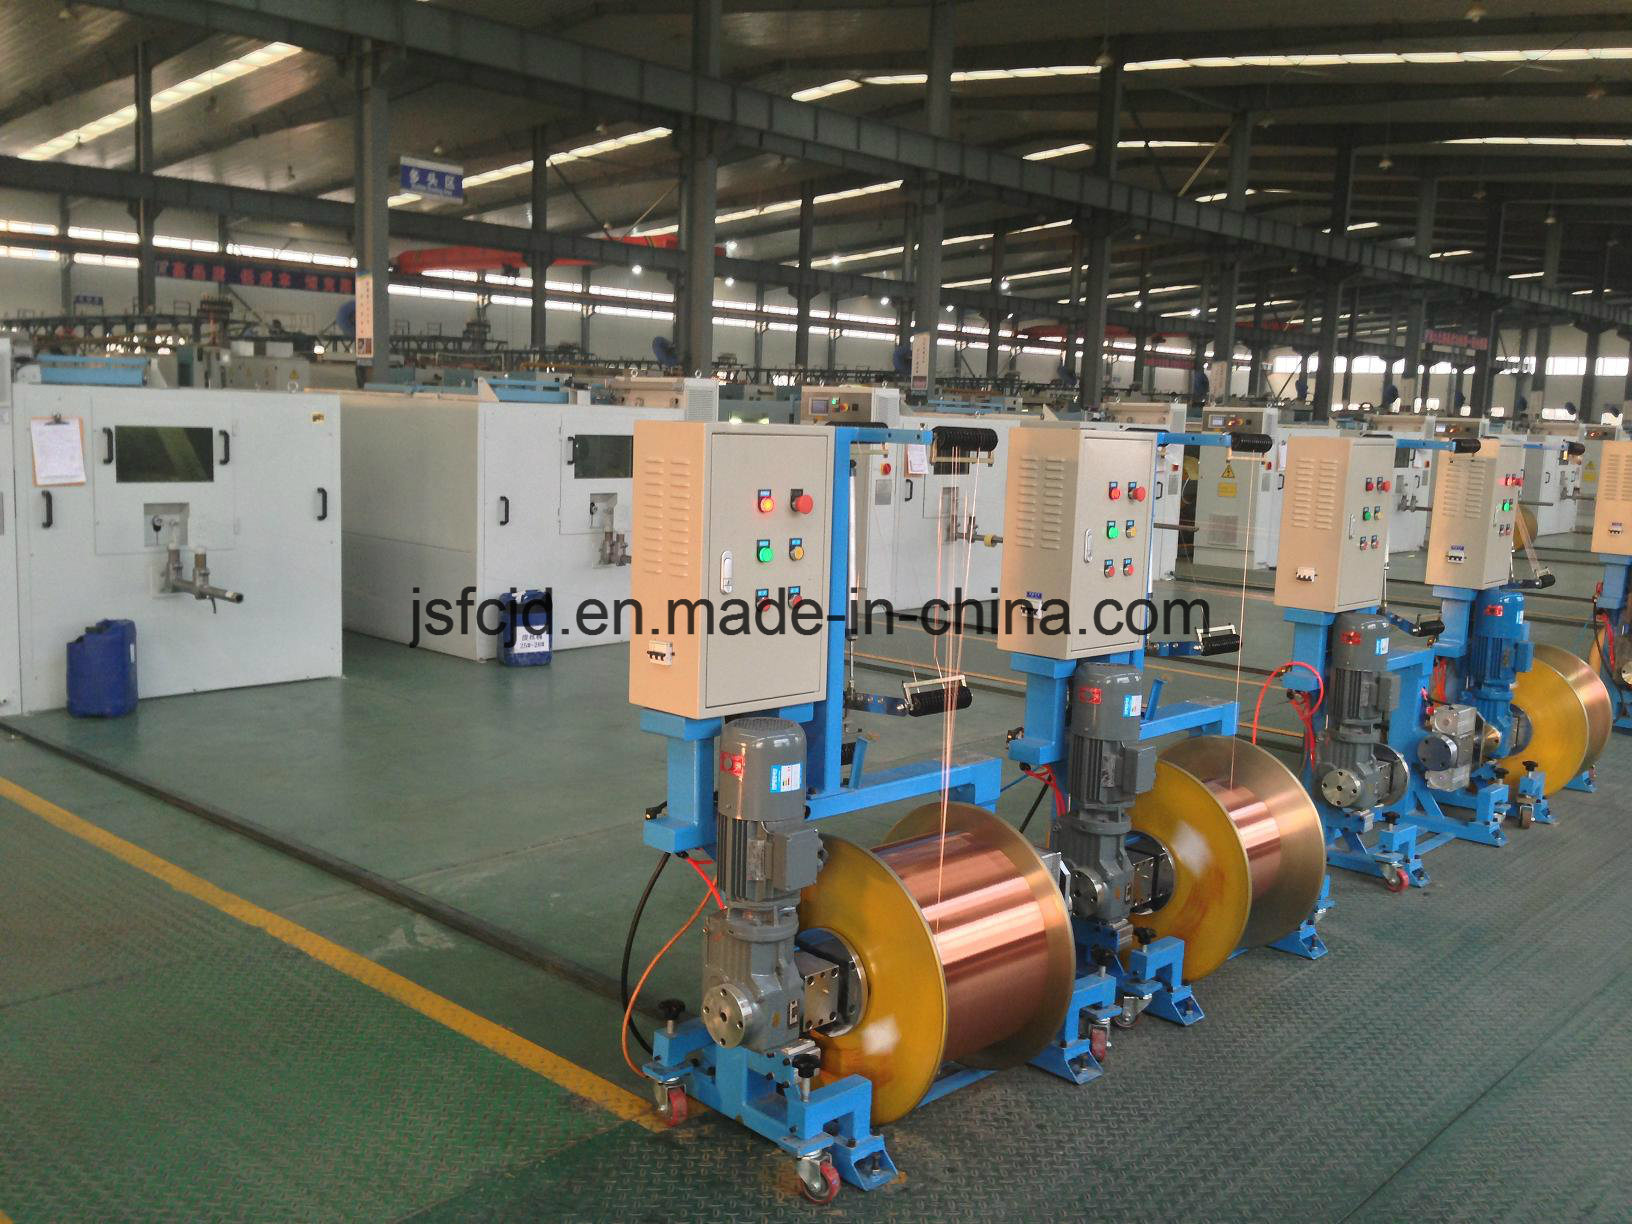 FC-630 Shaftless Multiple Head Drawing Motor Rised Pay-off Machine